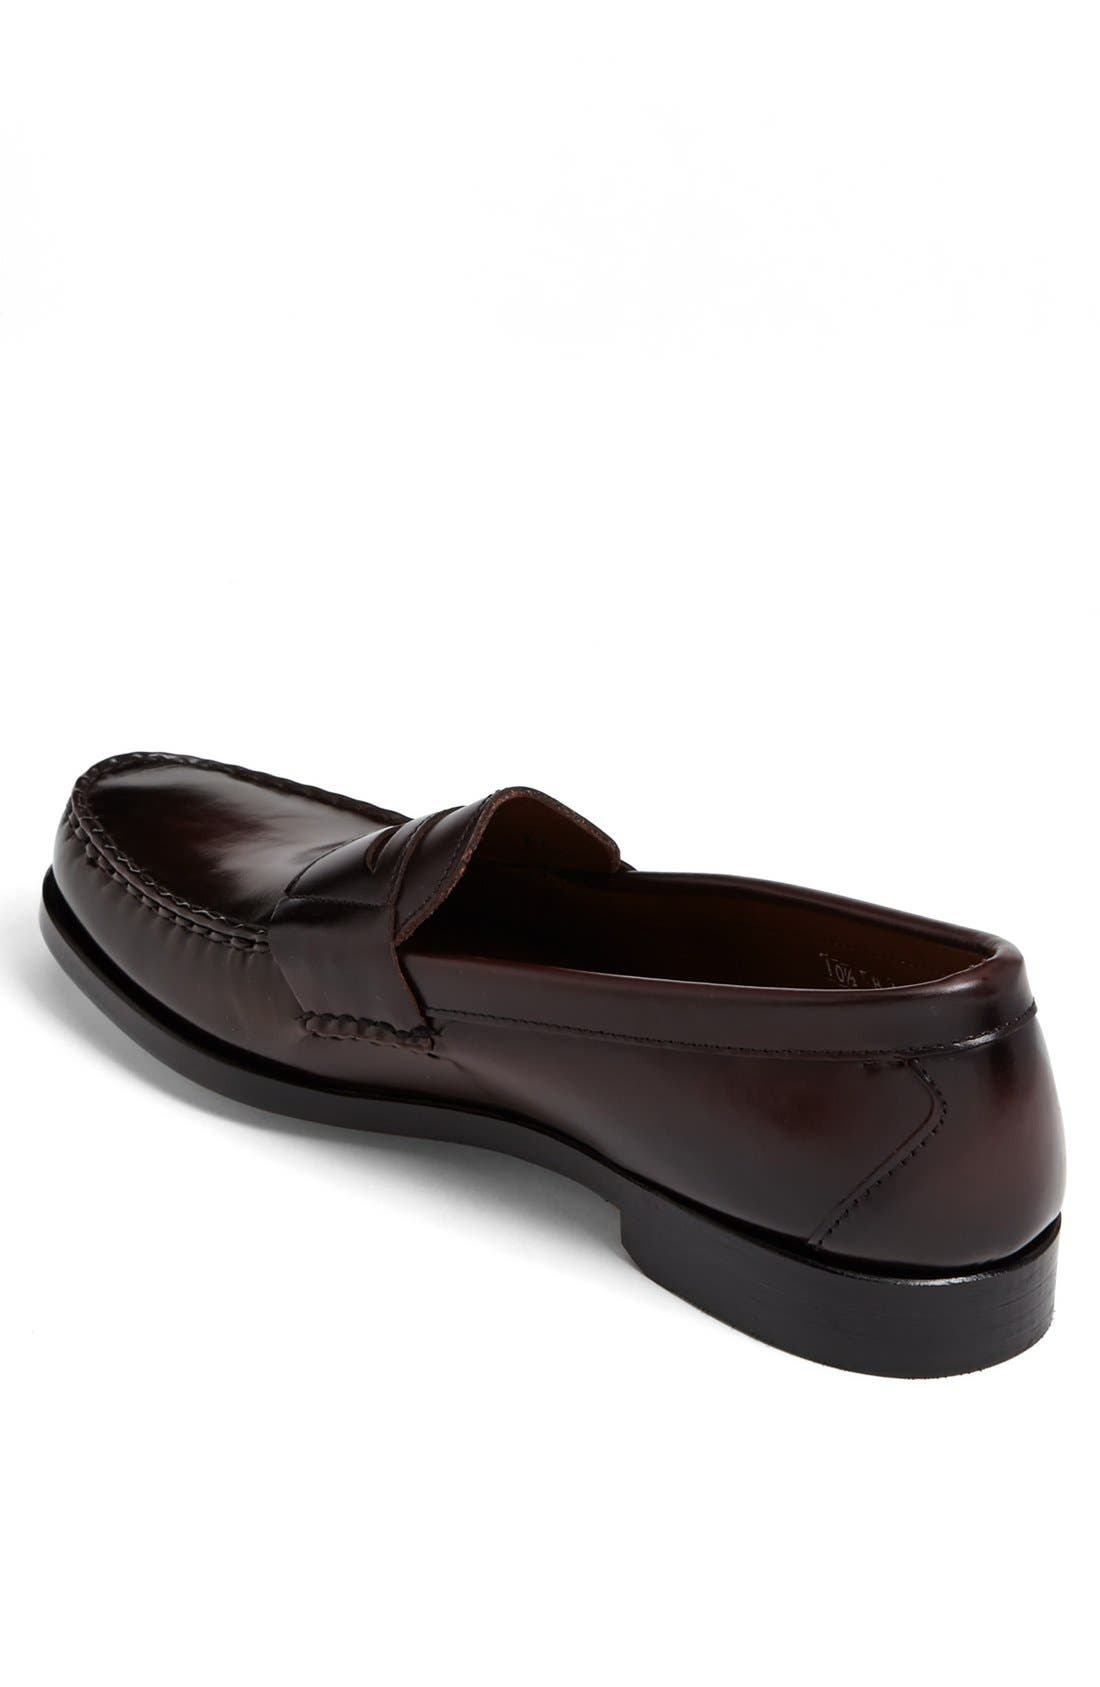 Alternate Image 2  - Allen Edmonds 'Walden' Loafer (Men)